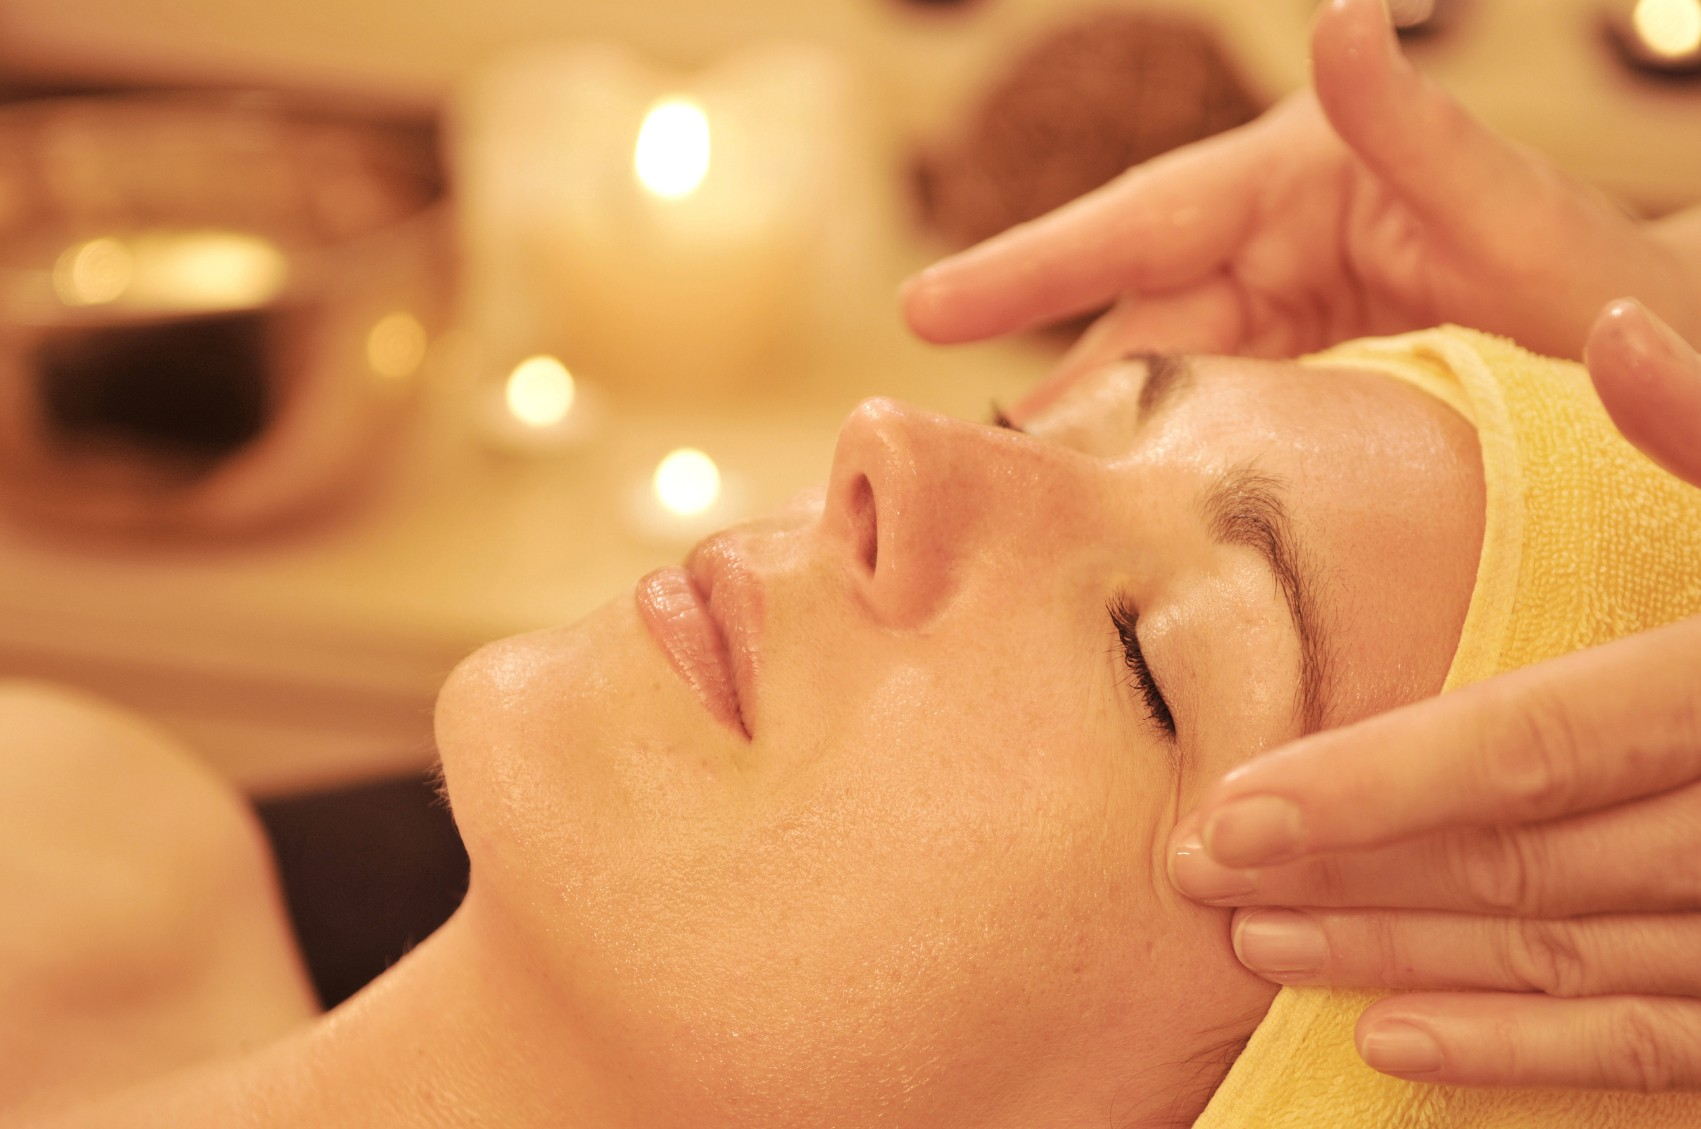 73% OFF, Rs 2500 only for Gold Facial + Gold Mask + Skin Polisher + Whitening Manicure + Whitening Pedicure + Hand & feet polisher + Neck and Shoulder Massage + Hand & Feet Massage + Threading (Eye Brow + Upper Lips) by Zen-Salon & Spa Commercial lane Q block, DHA, Lahore.